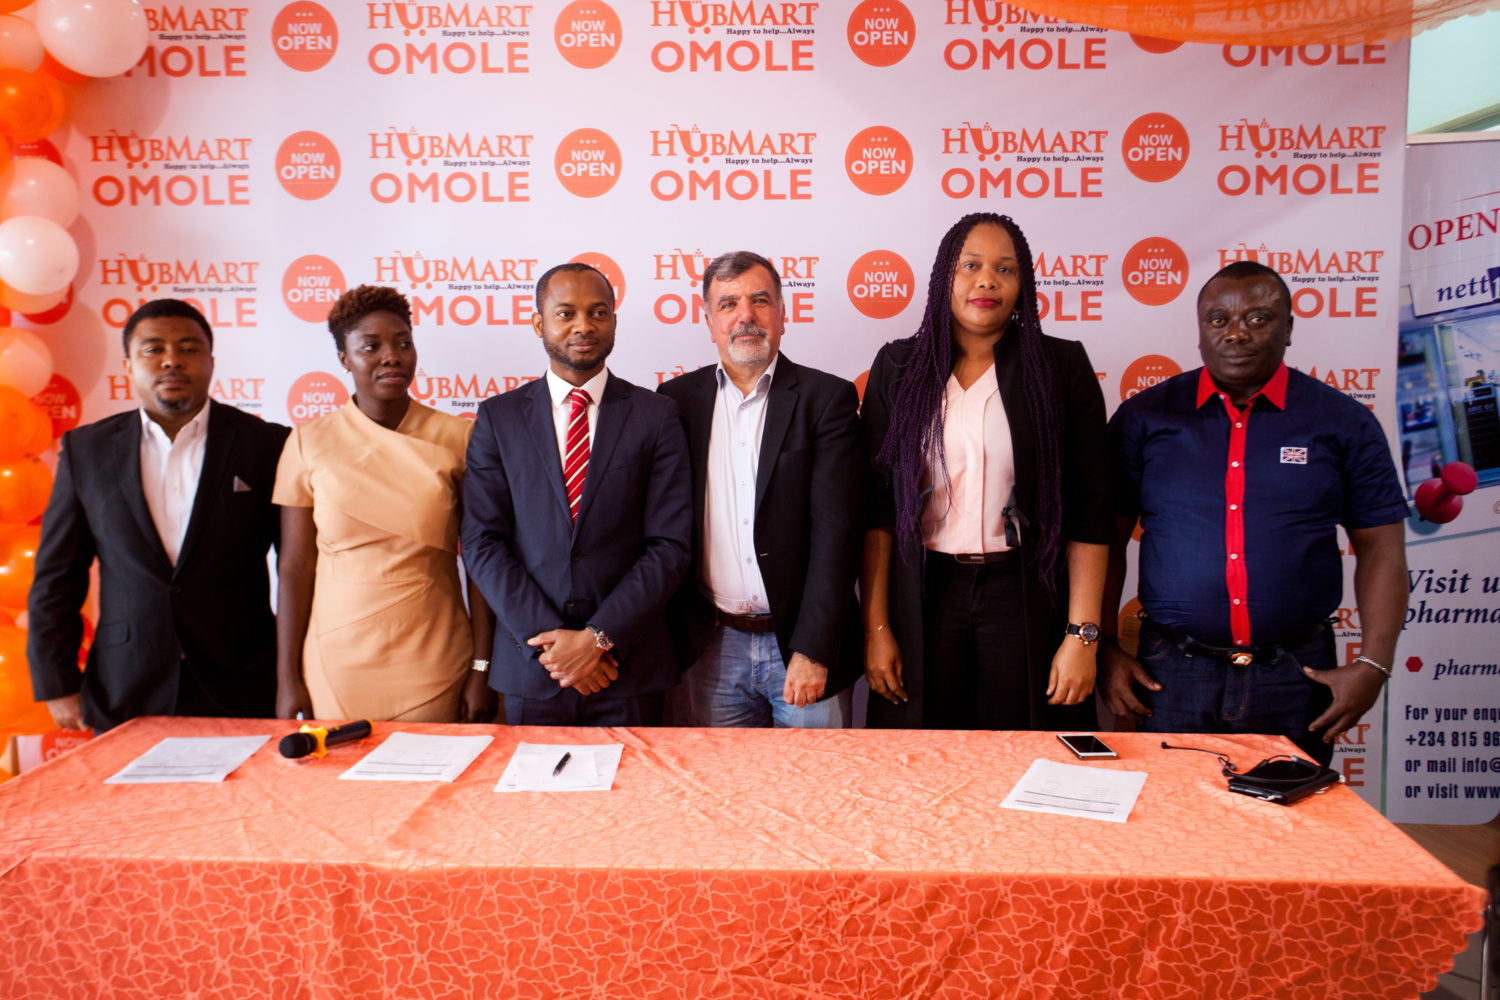 L-R; George Ukwundu, Head of Operations, Hubmart Stores, Timilehin Adeyokunnu, Marketing Manager Hubmart Stores, Anthony Atuche, Chief Executive Officer, Hubmart Stores, Sinan Soysal Chief Operating Officer, Hubmart Stores, Uju Oduah, Head of Human Resources and Eze Oseji, Head of B2B Operations at the recent opening of Hubmart Stores Omole, Lagos.